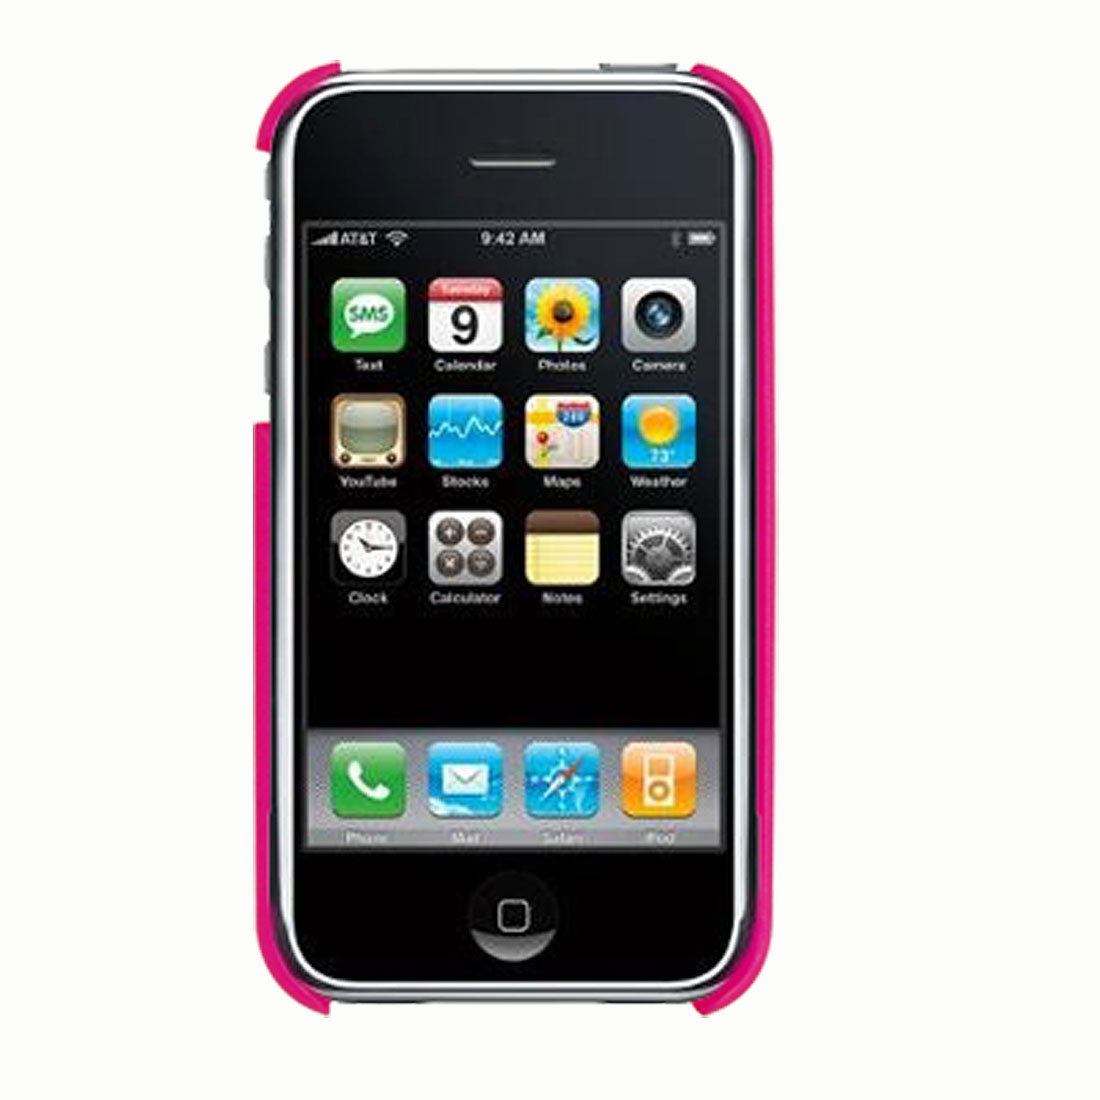 Mobile Hard Plastic Back Shield Case w/ Flame Pattern for iPhone 3G and 3G S